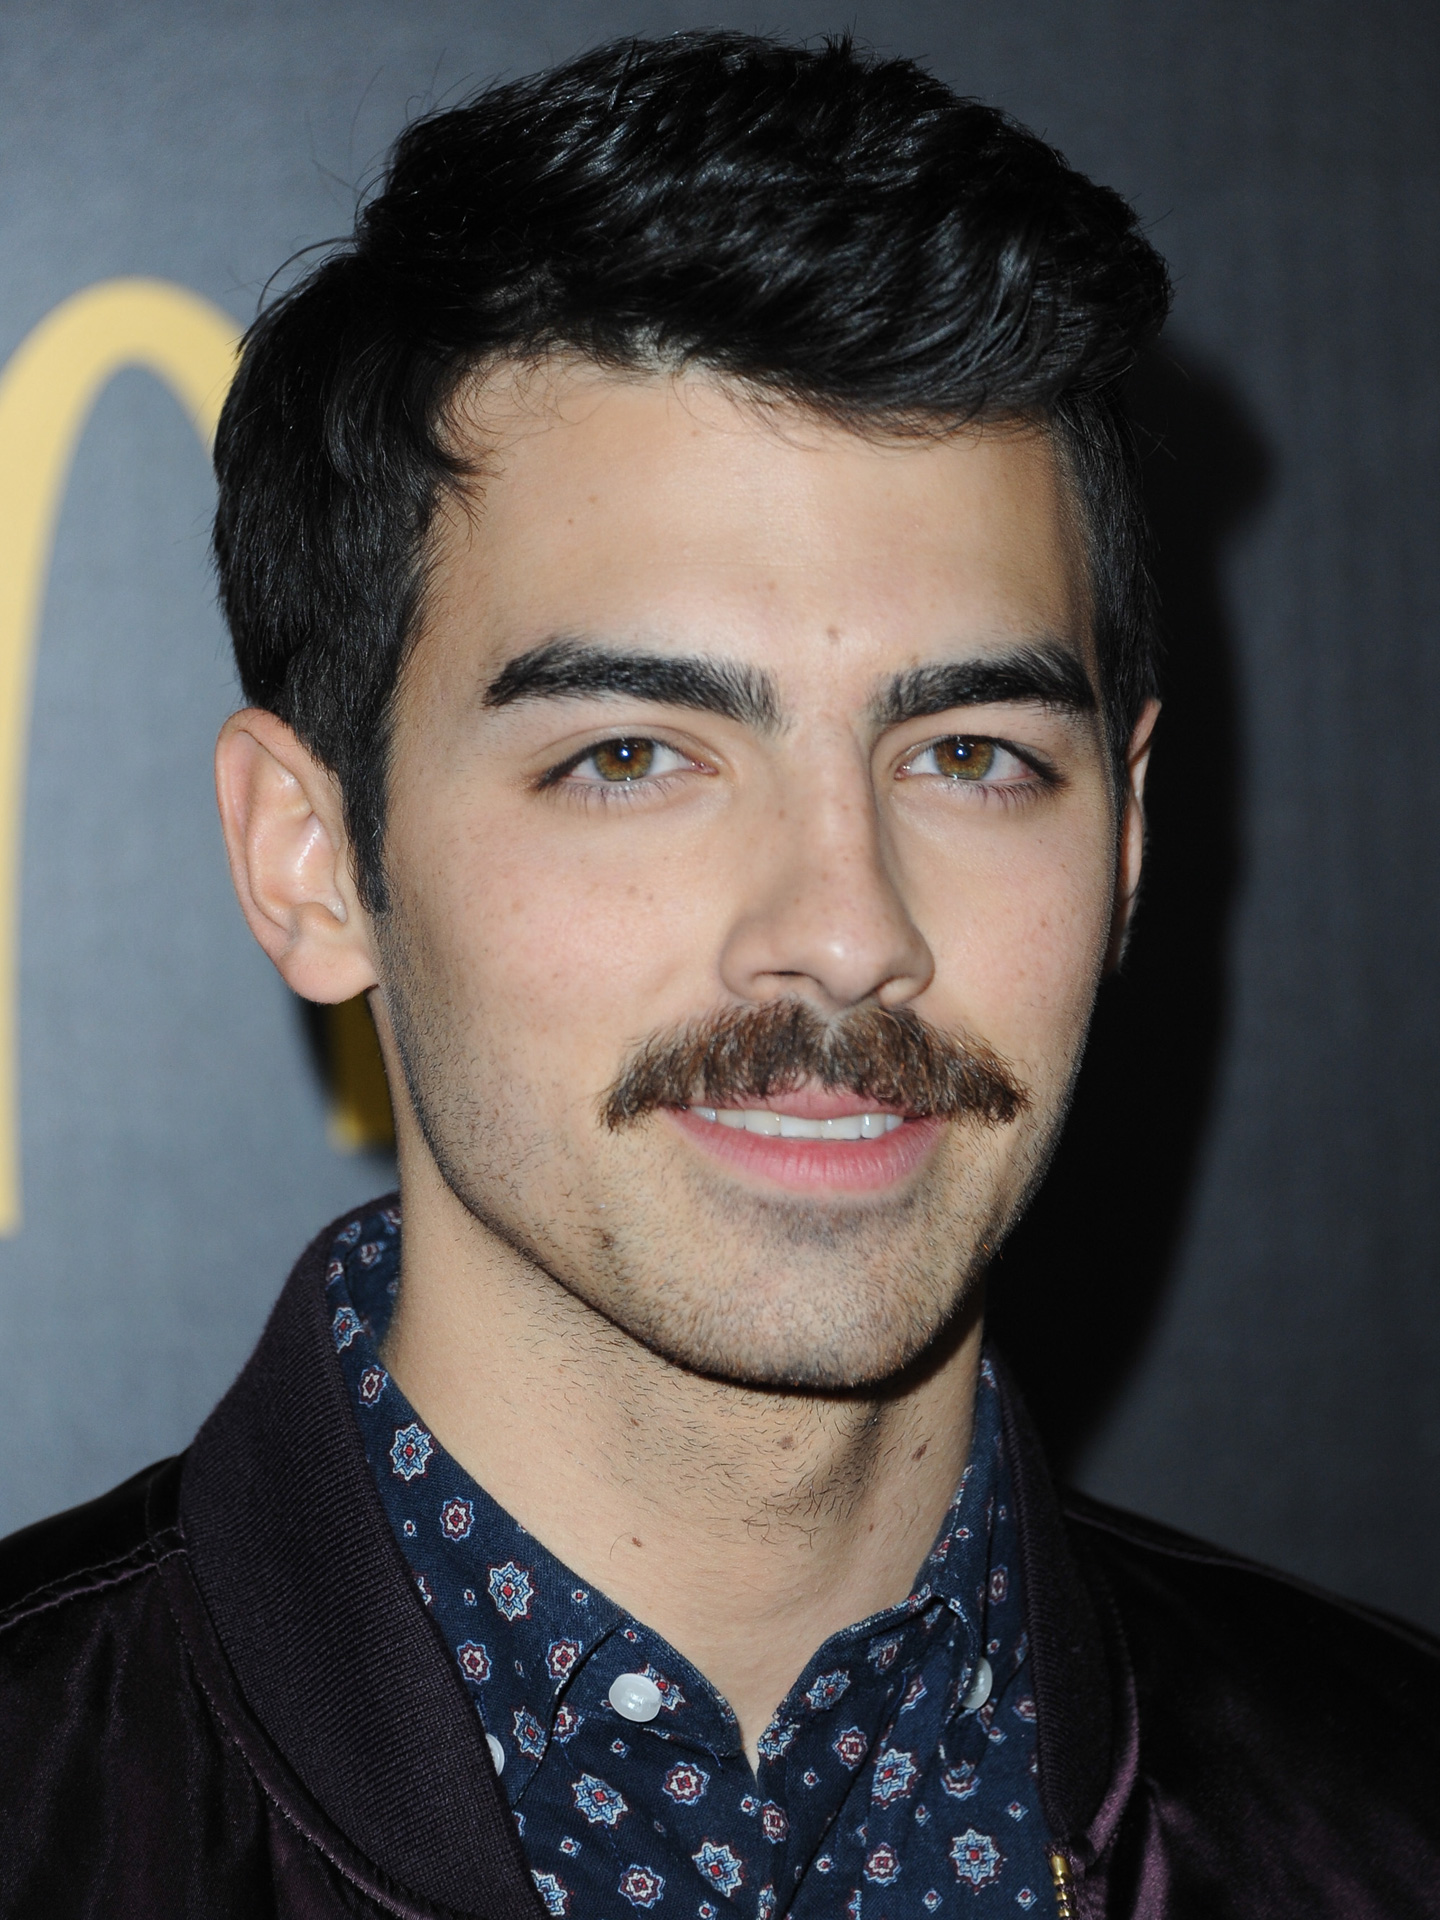 Joe Jonas Mustache Pictures - Guy Celebrities With Mustaches Brad Pitt